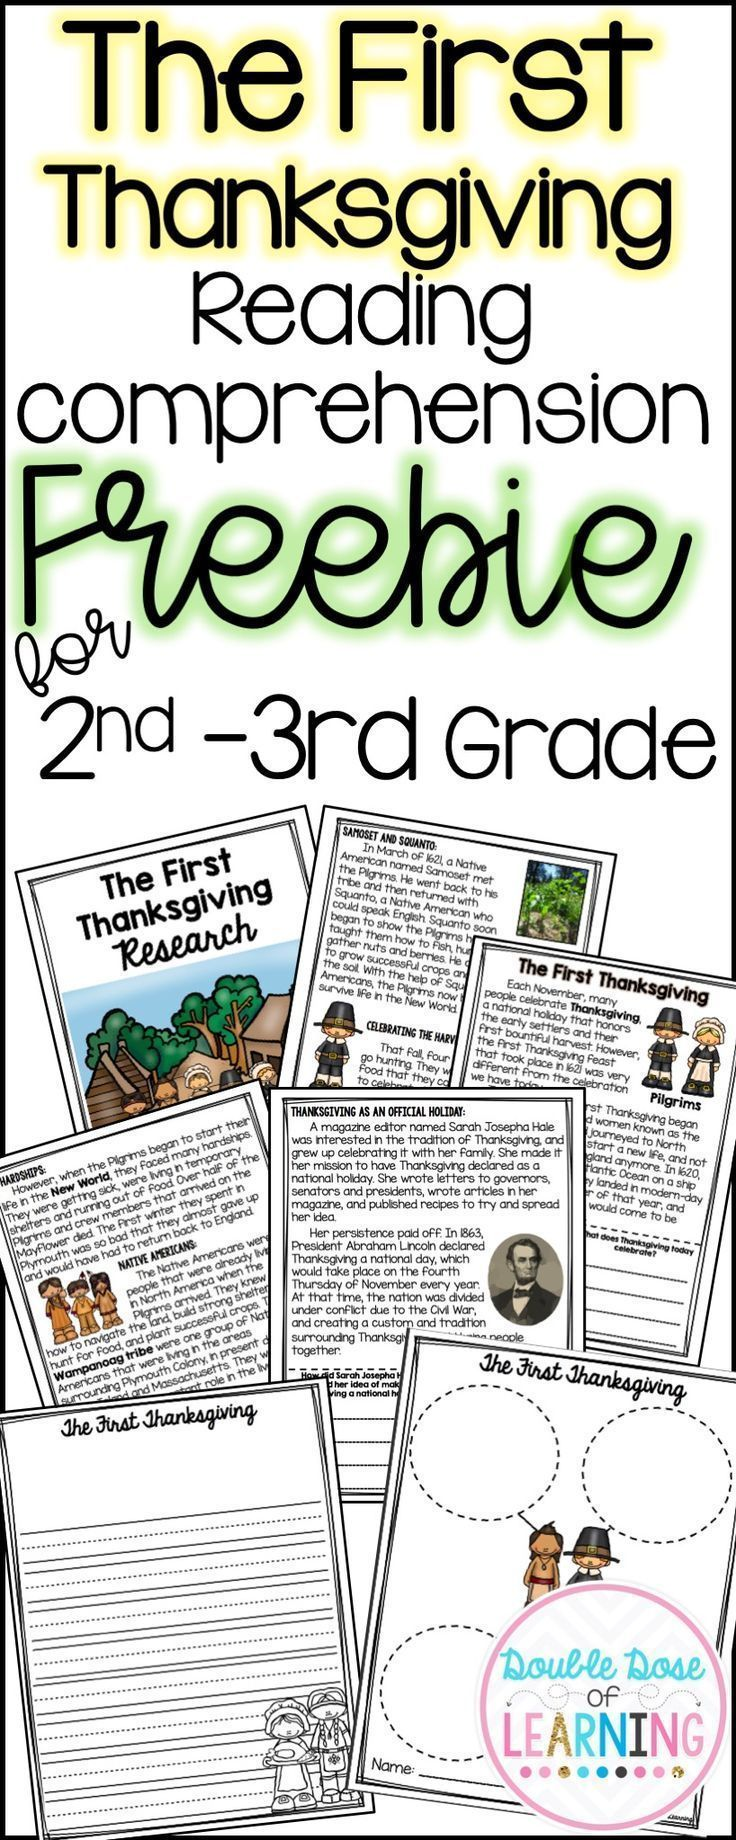 Free First Thanksgiving Reading Comprehension Workbook Writing Page Gr Thanksgiving Reading Comprehension Thanksgiving Readings Thanksgiving Reading Passages [ 1840 x 736 Pixel ]